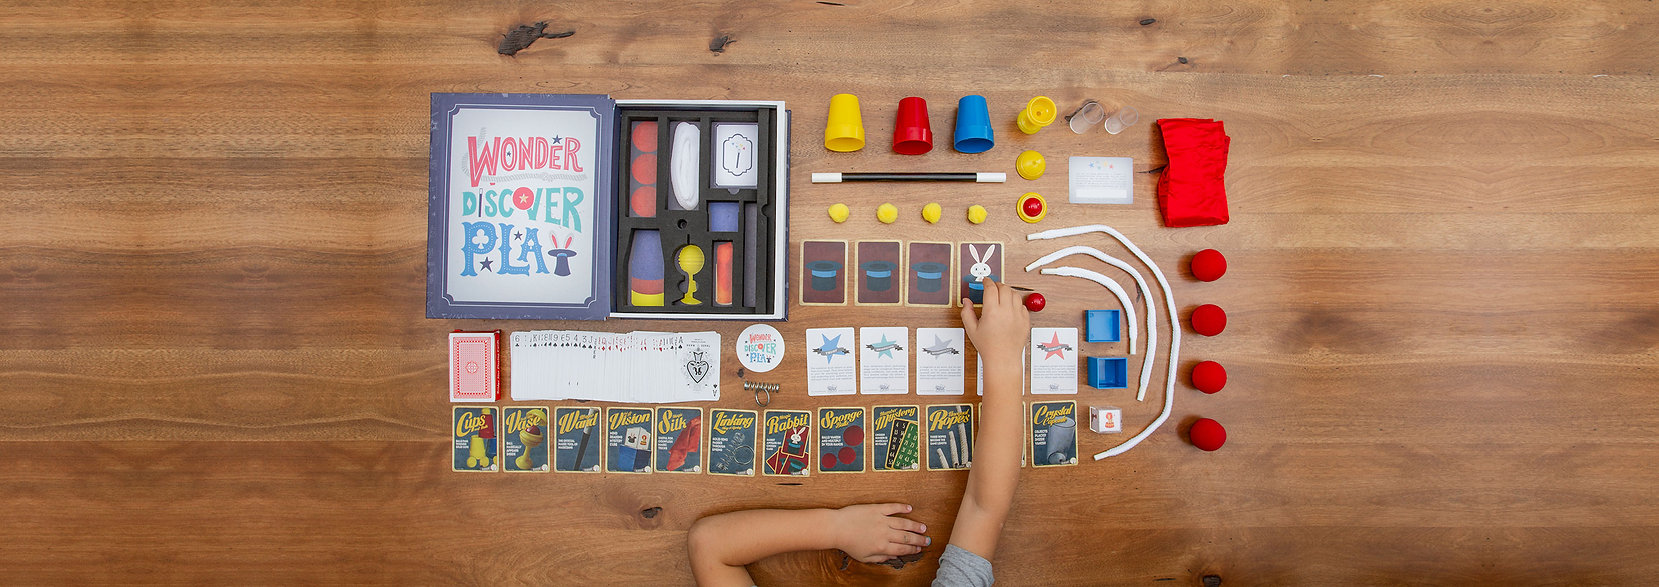 Birds eye view of the entire magic set. Each kit comes with magic tricks, magic wand, magic cards, magic rope, magic balls, magic cups, magic cloth and much more. Magic Set for Kids and Magic Kit for Kids by Johnny Magic.